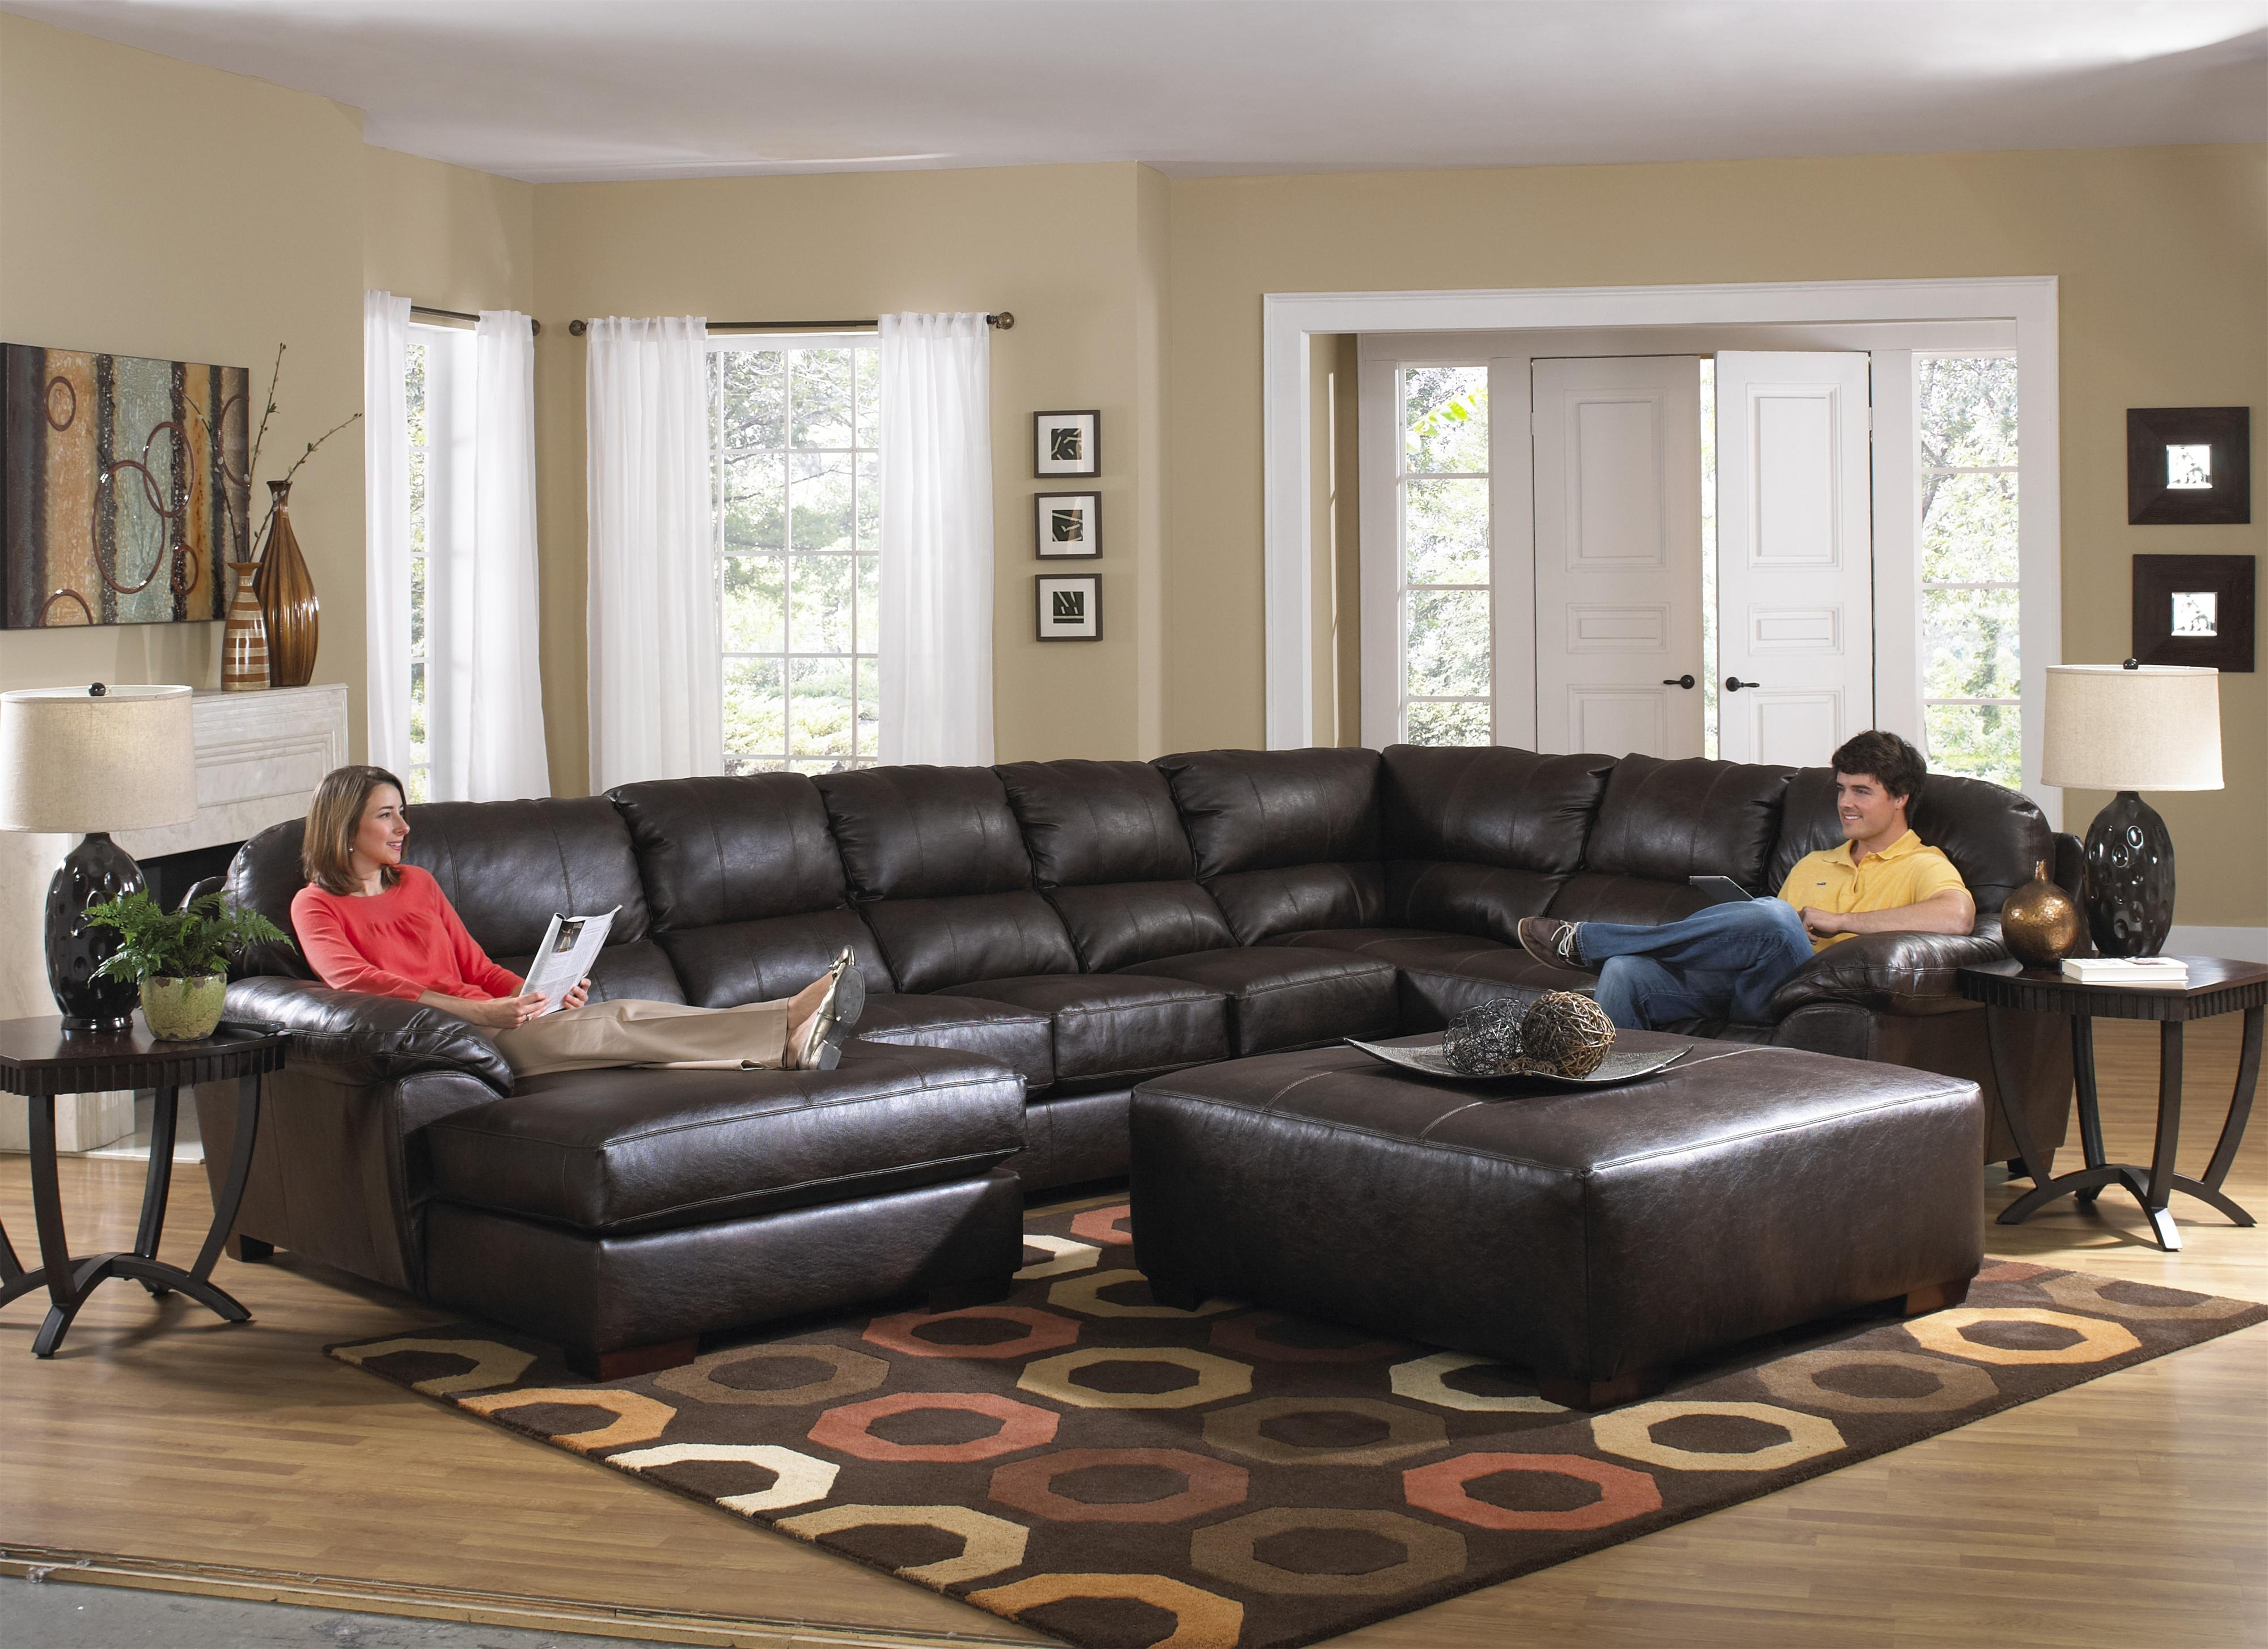 Jackson Furniture Lawson Extra Large Seven Seat Sectional (View 18 of 20)